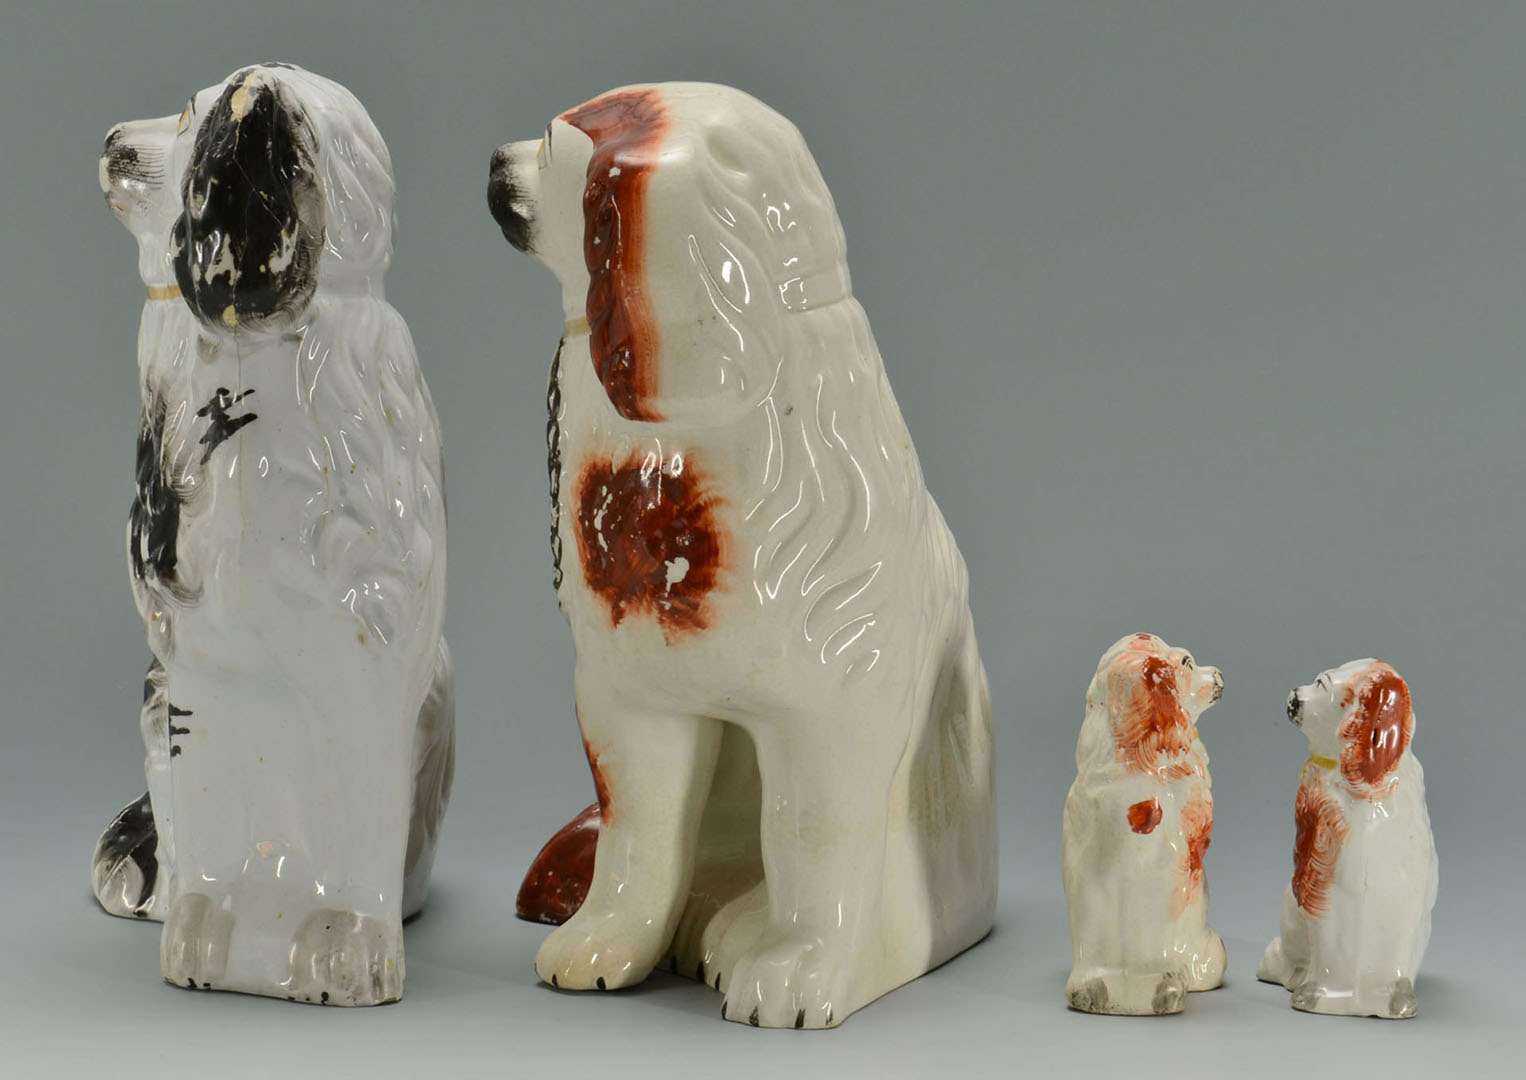 Lot 2872341: Grouping of 4 Staffordshire Spaniel dogs